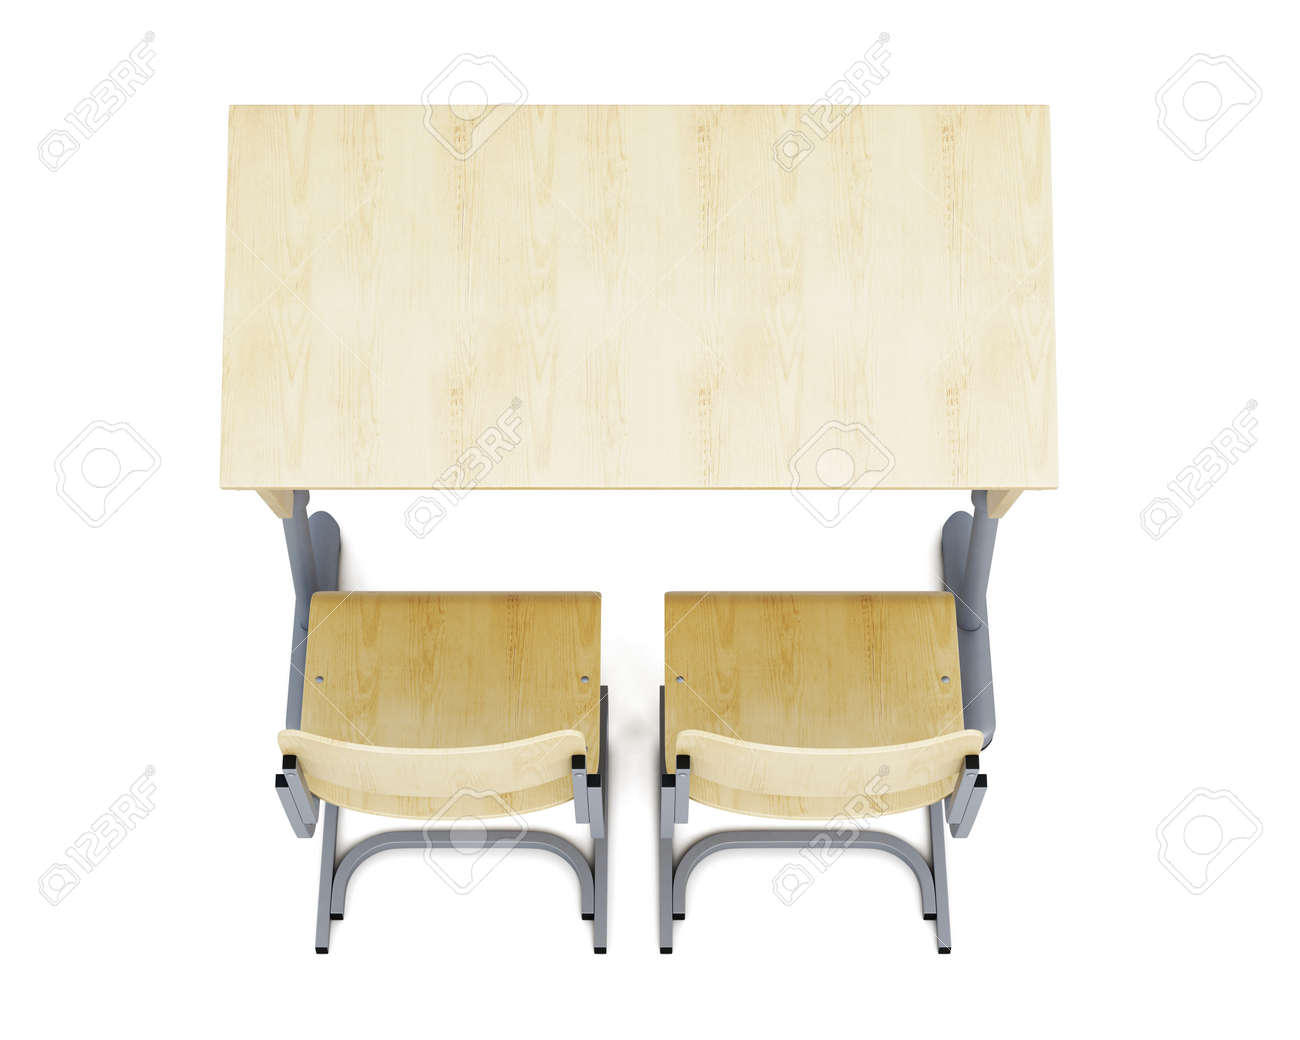 Top View Of A School Desk And Chairs Isolated On White Background